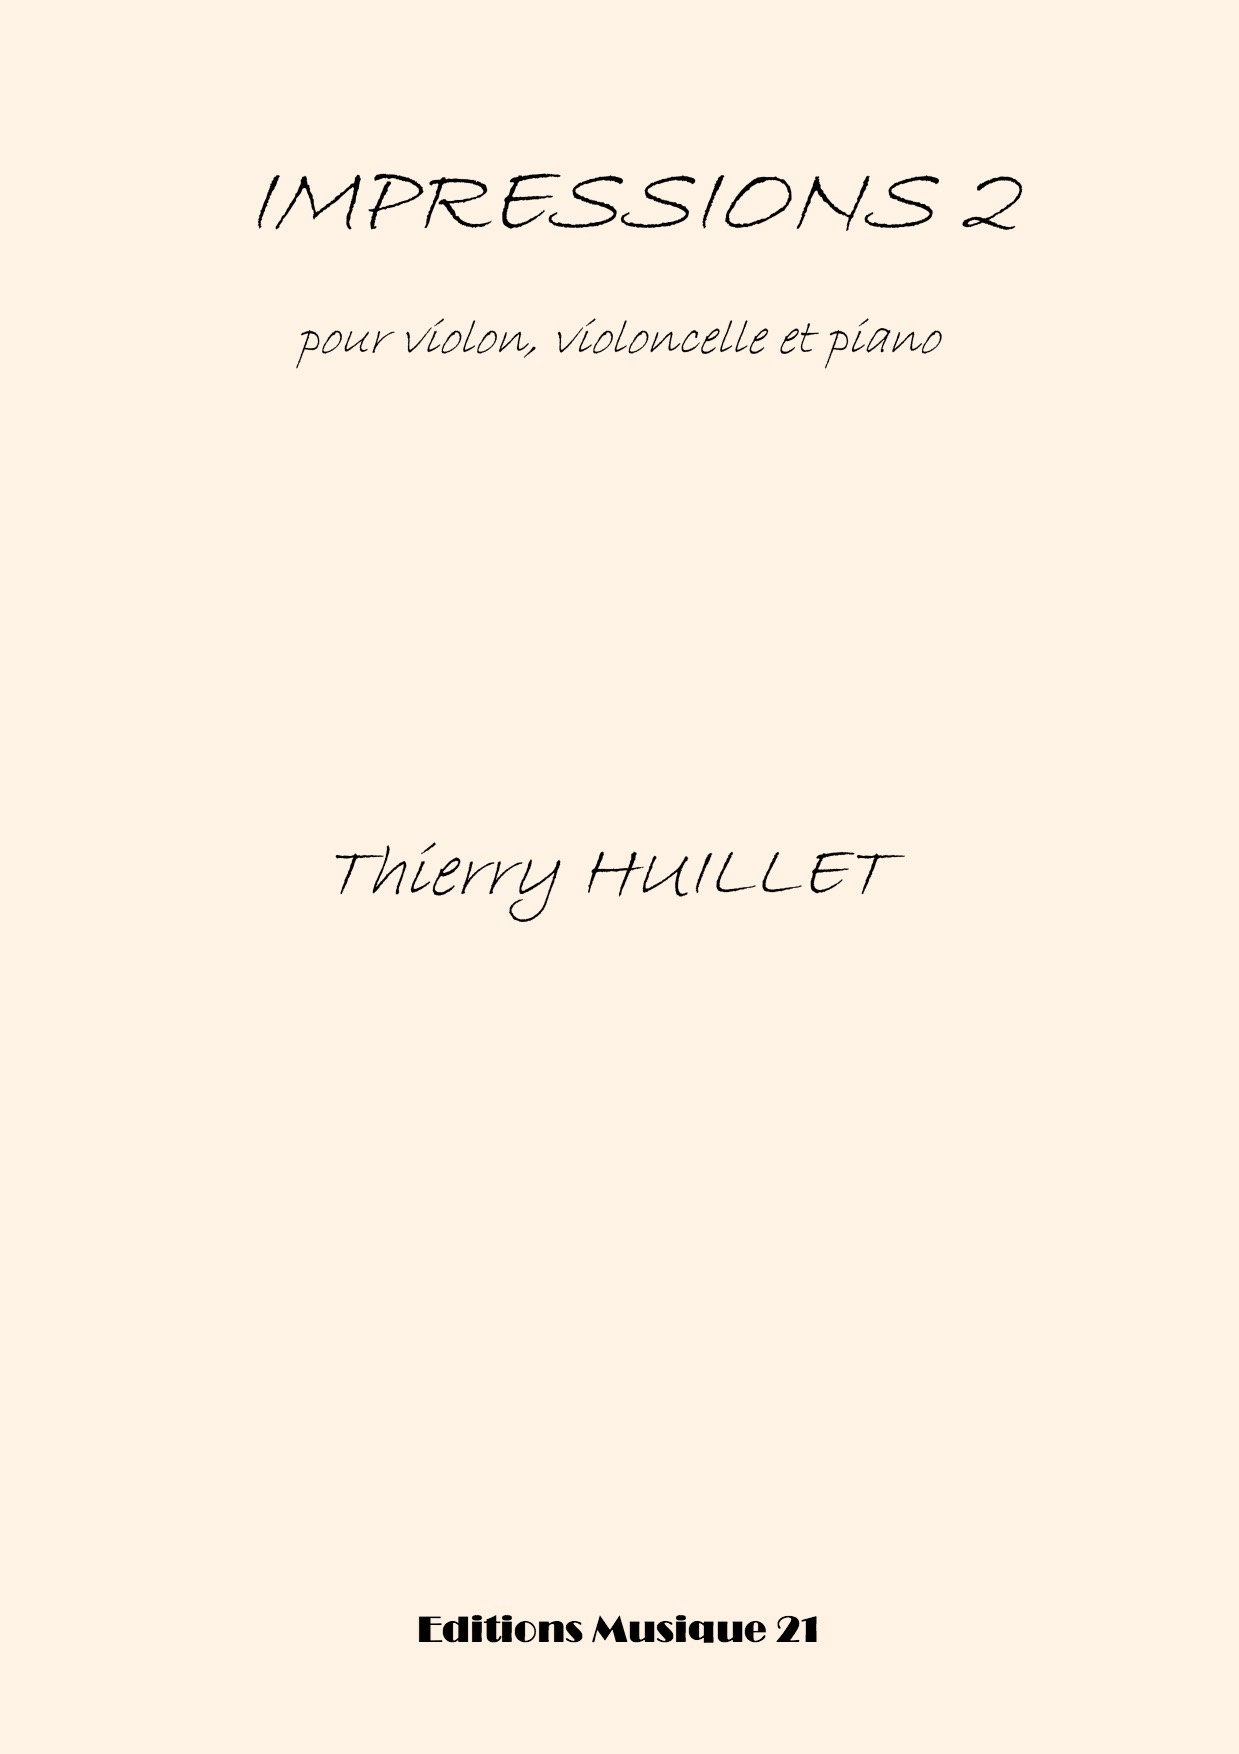 Thierry HUILLET – Impressions 2 For Violin, Cello And Piano